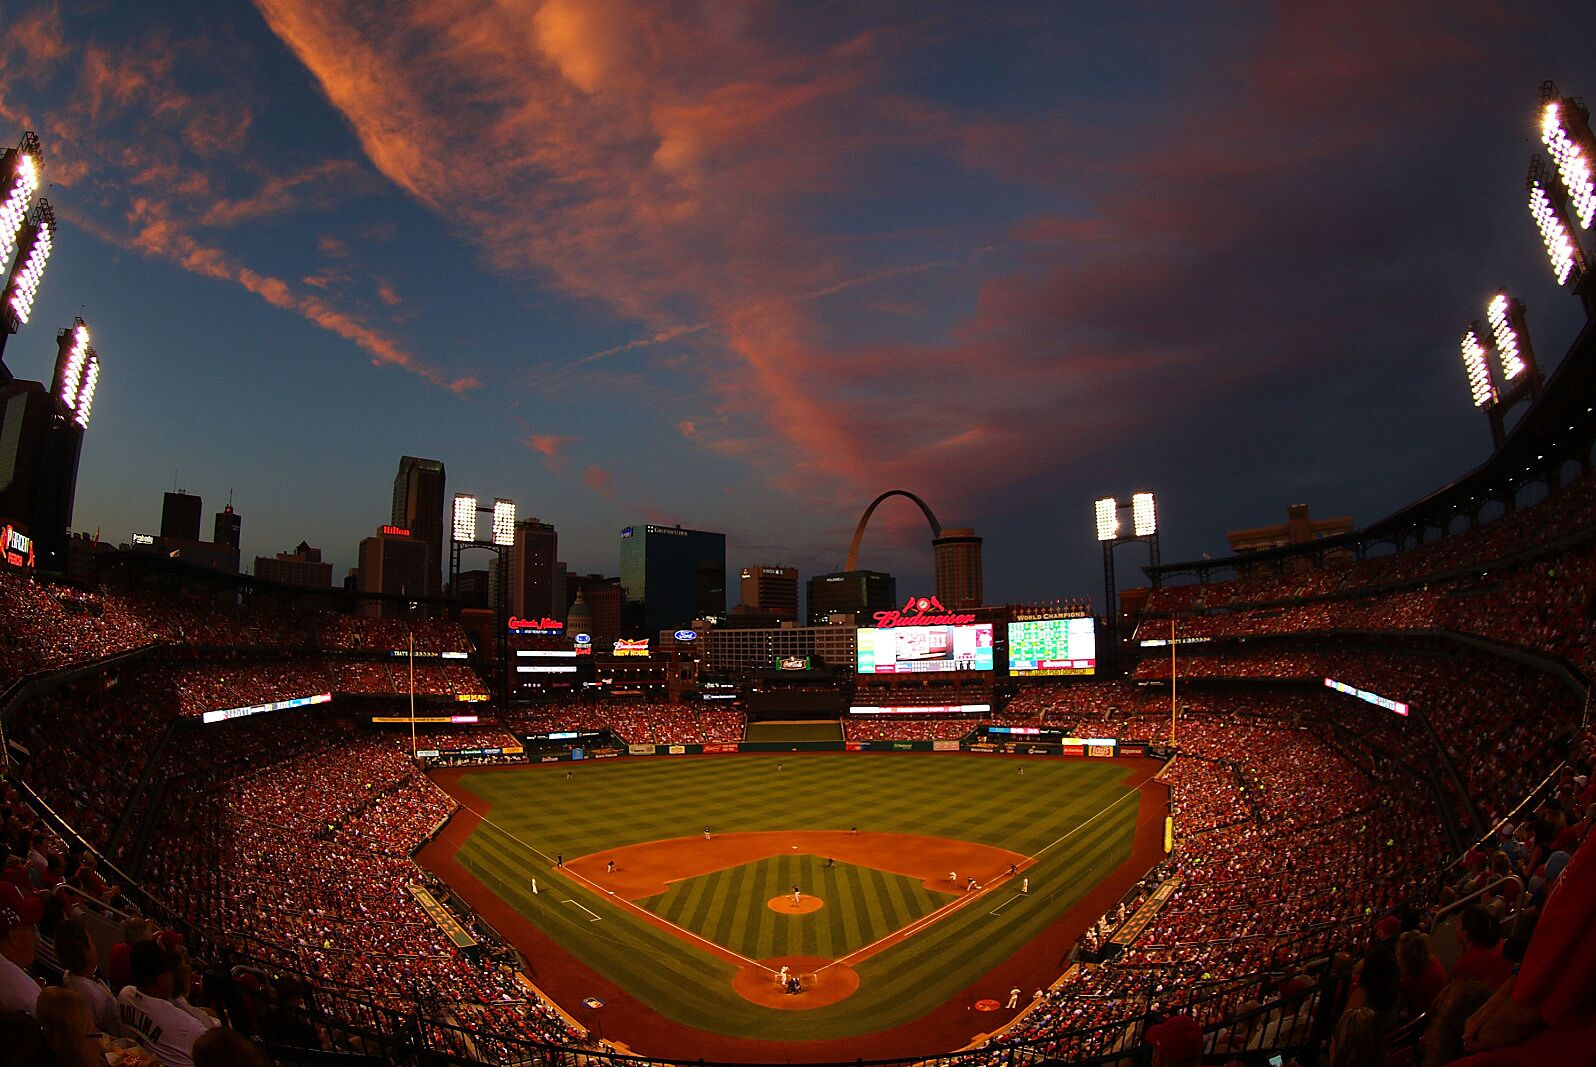 St. Louis Cardinals: With two weeks left, who's in negative WAR?